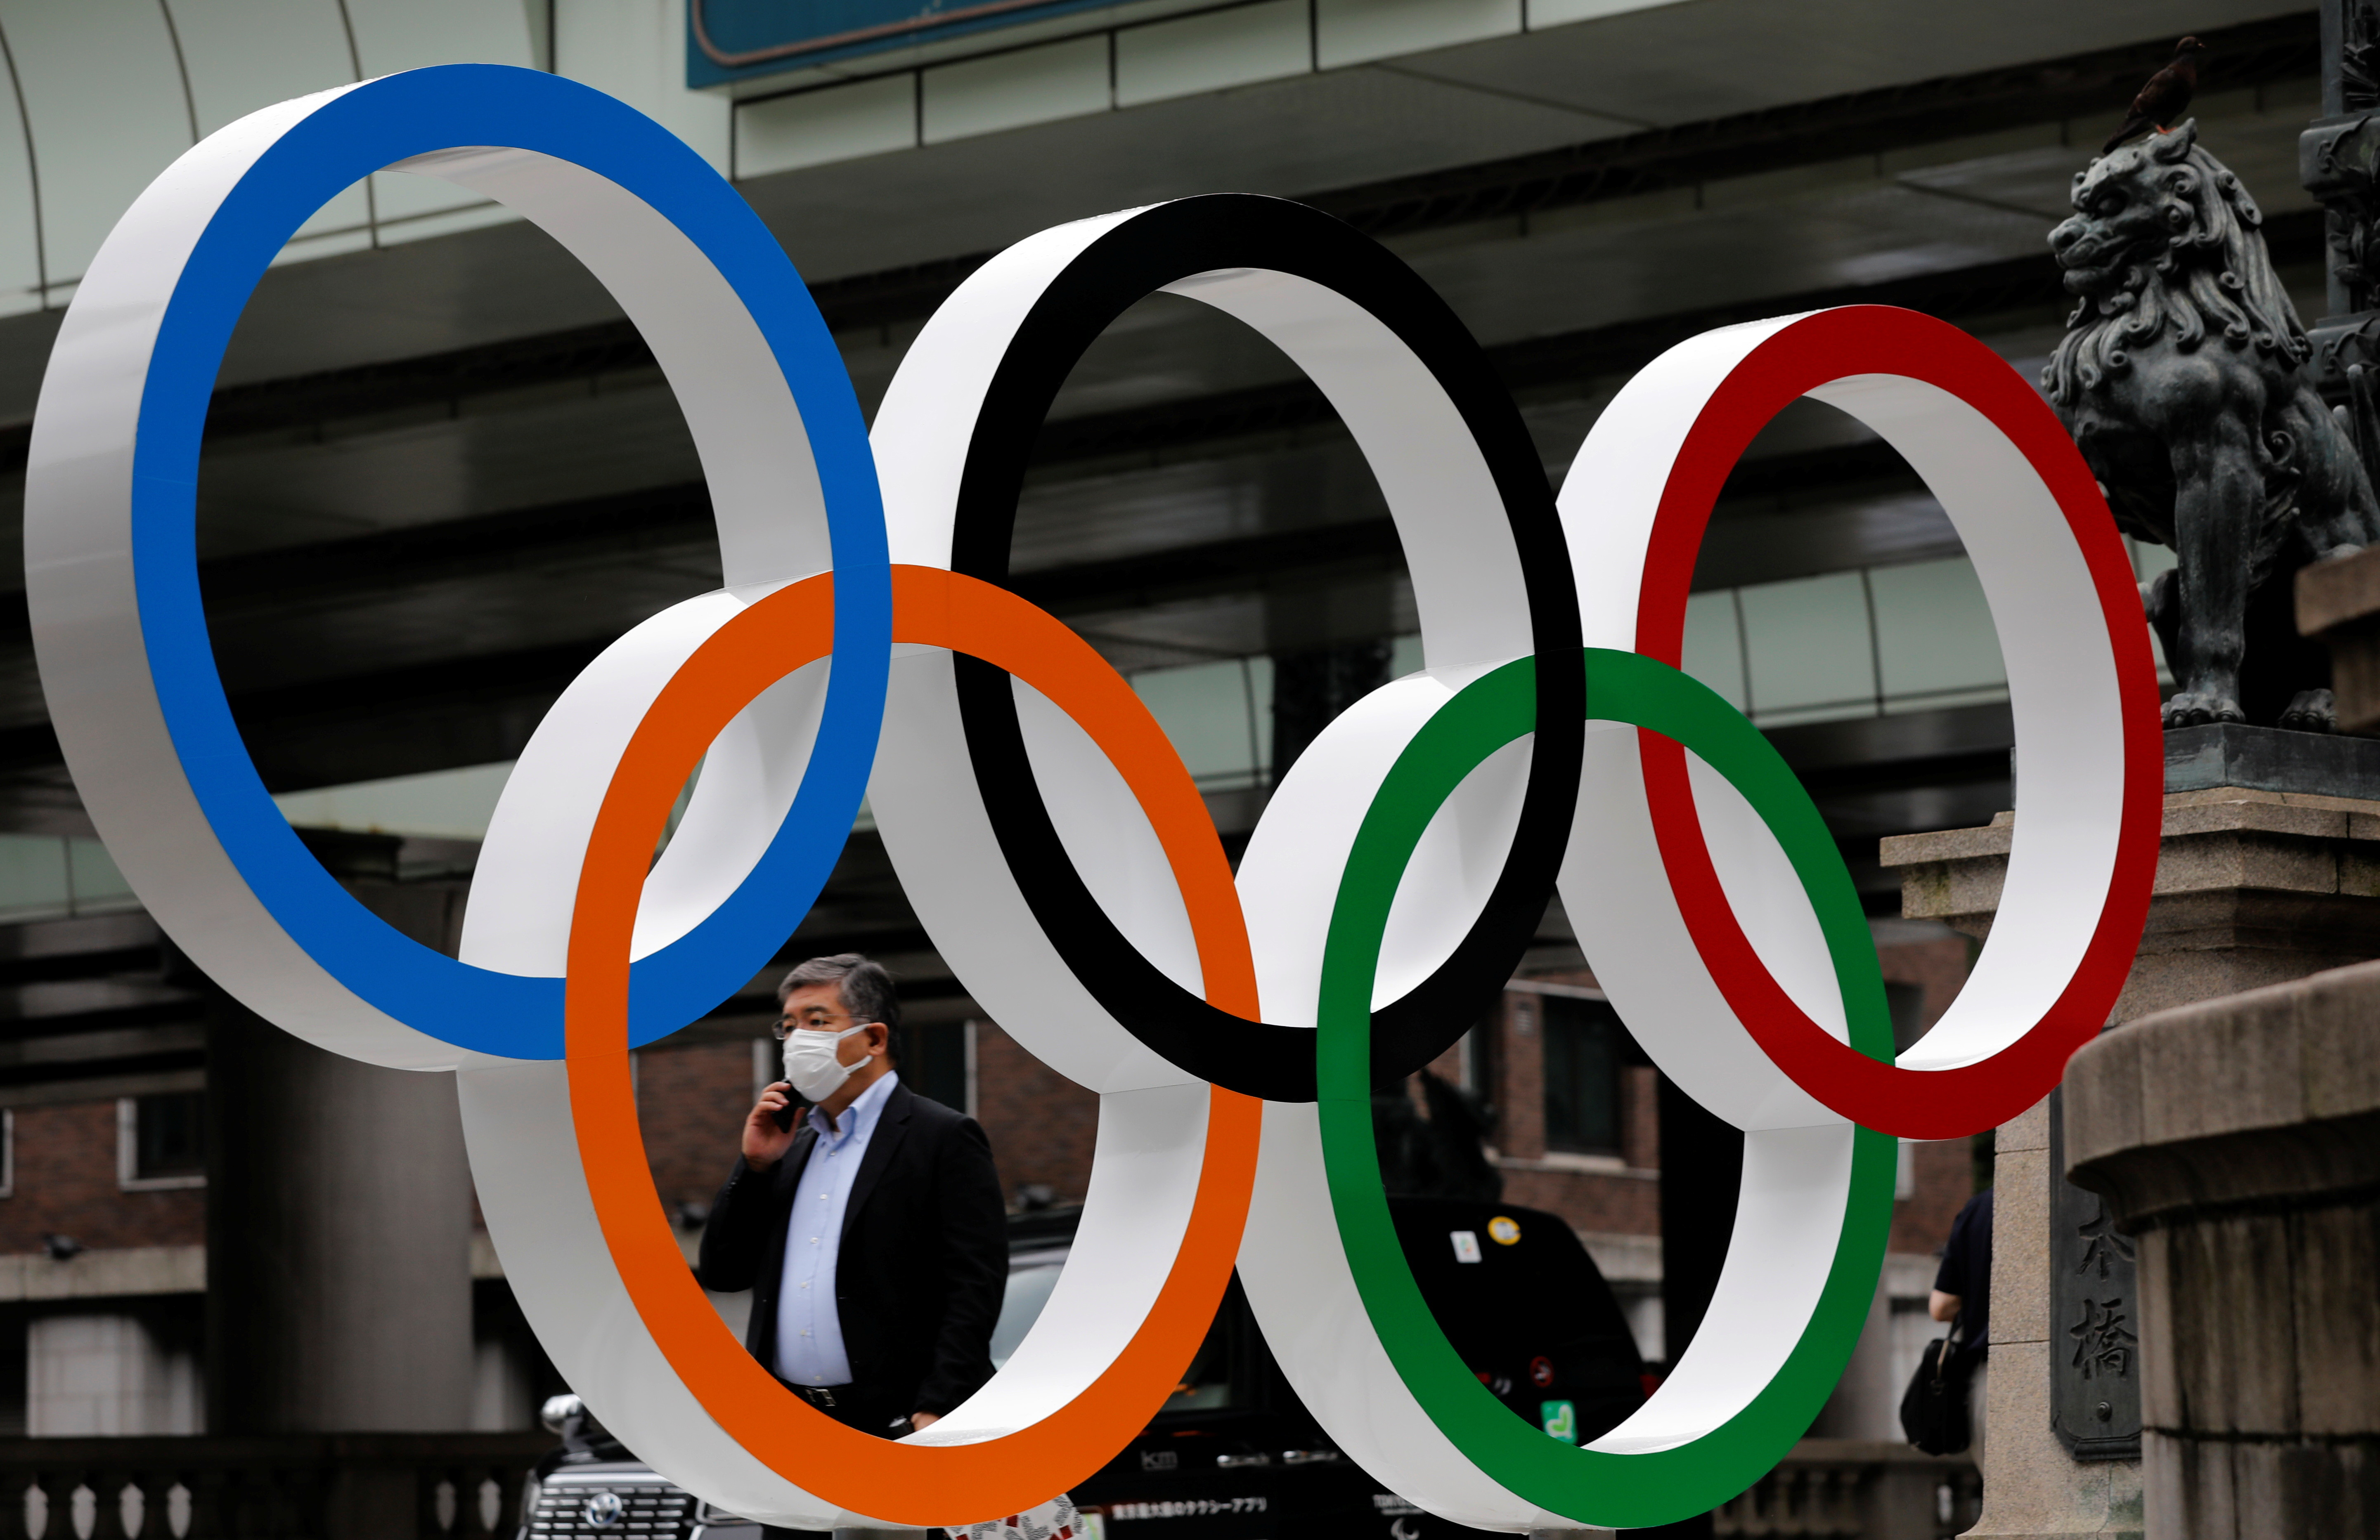 A man wearing a protective mask, following the COVID-19 outbreak, walks past Olympic Ring promoting Tokyo 2020 Olympic Games in Tokyo, Japan